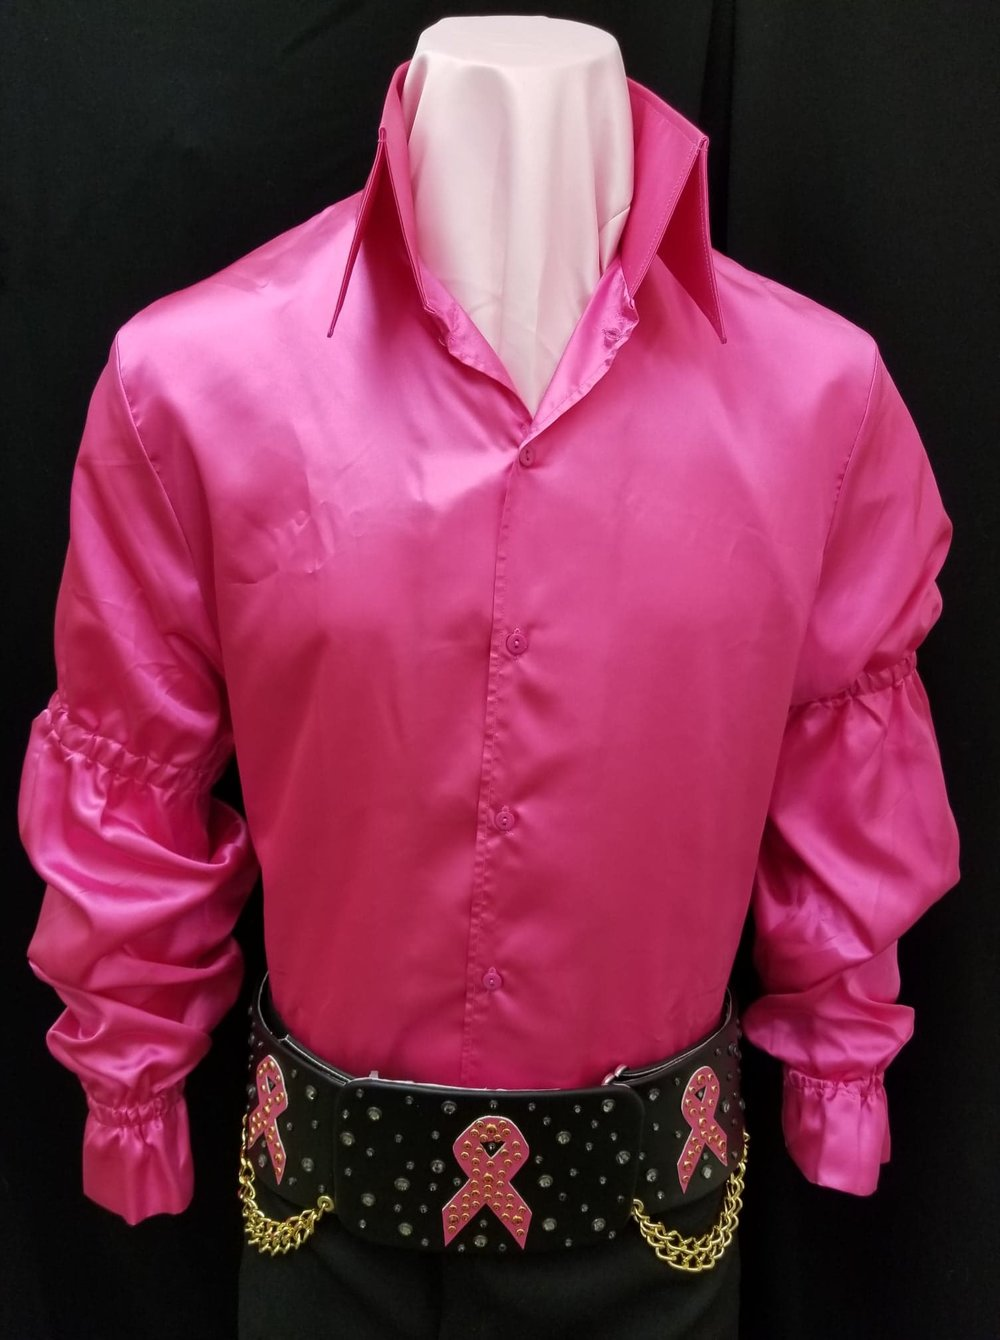 Breast Cancer Shirt & Belt.jpg